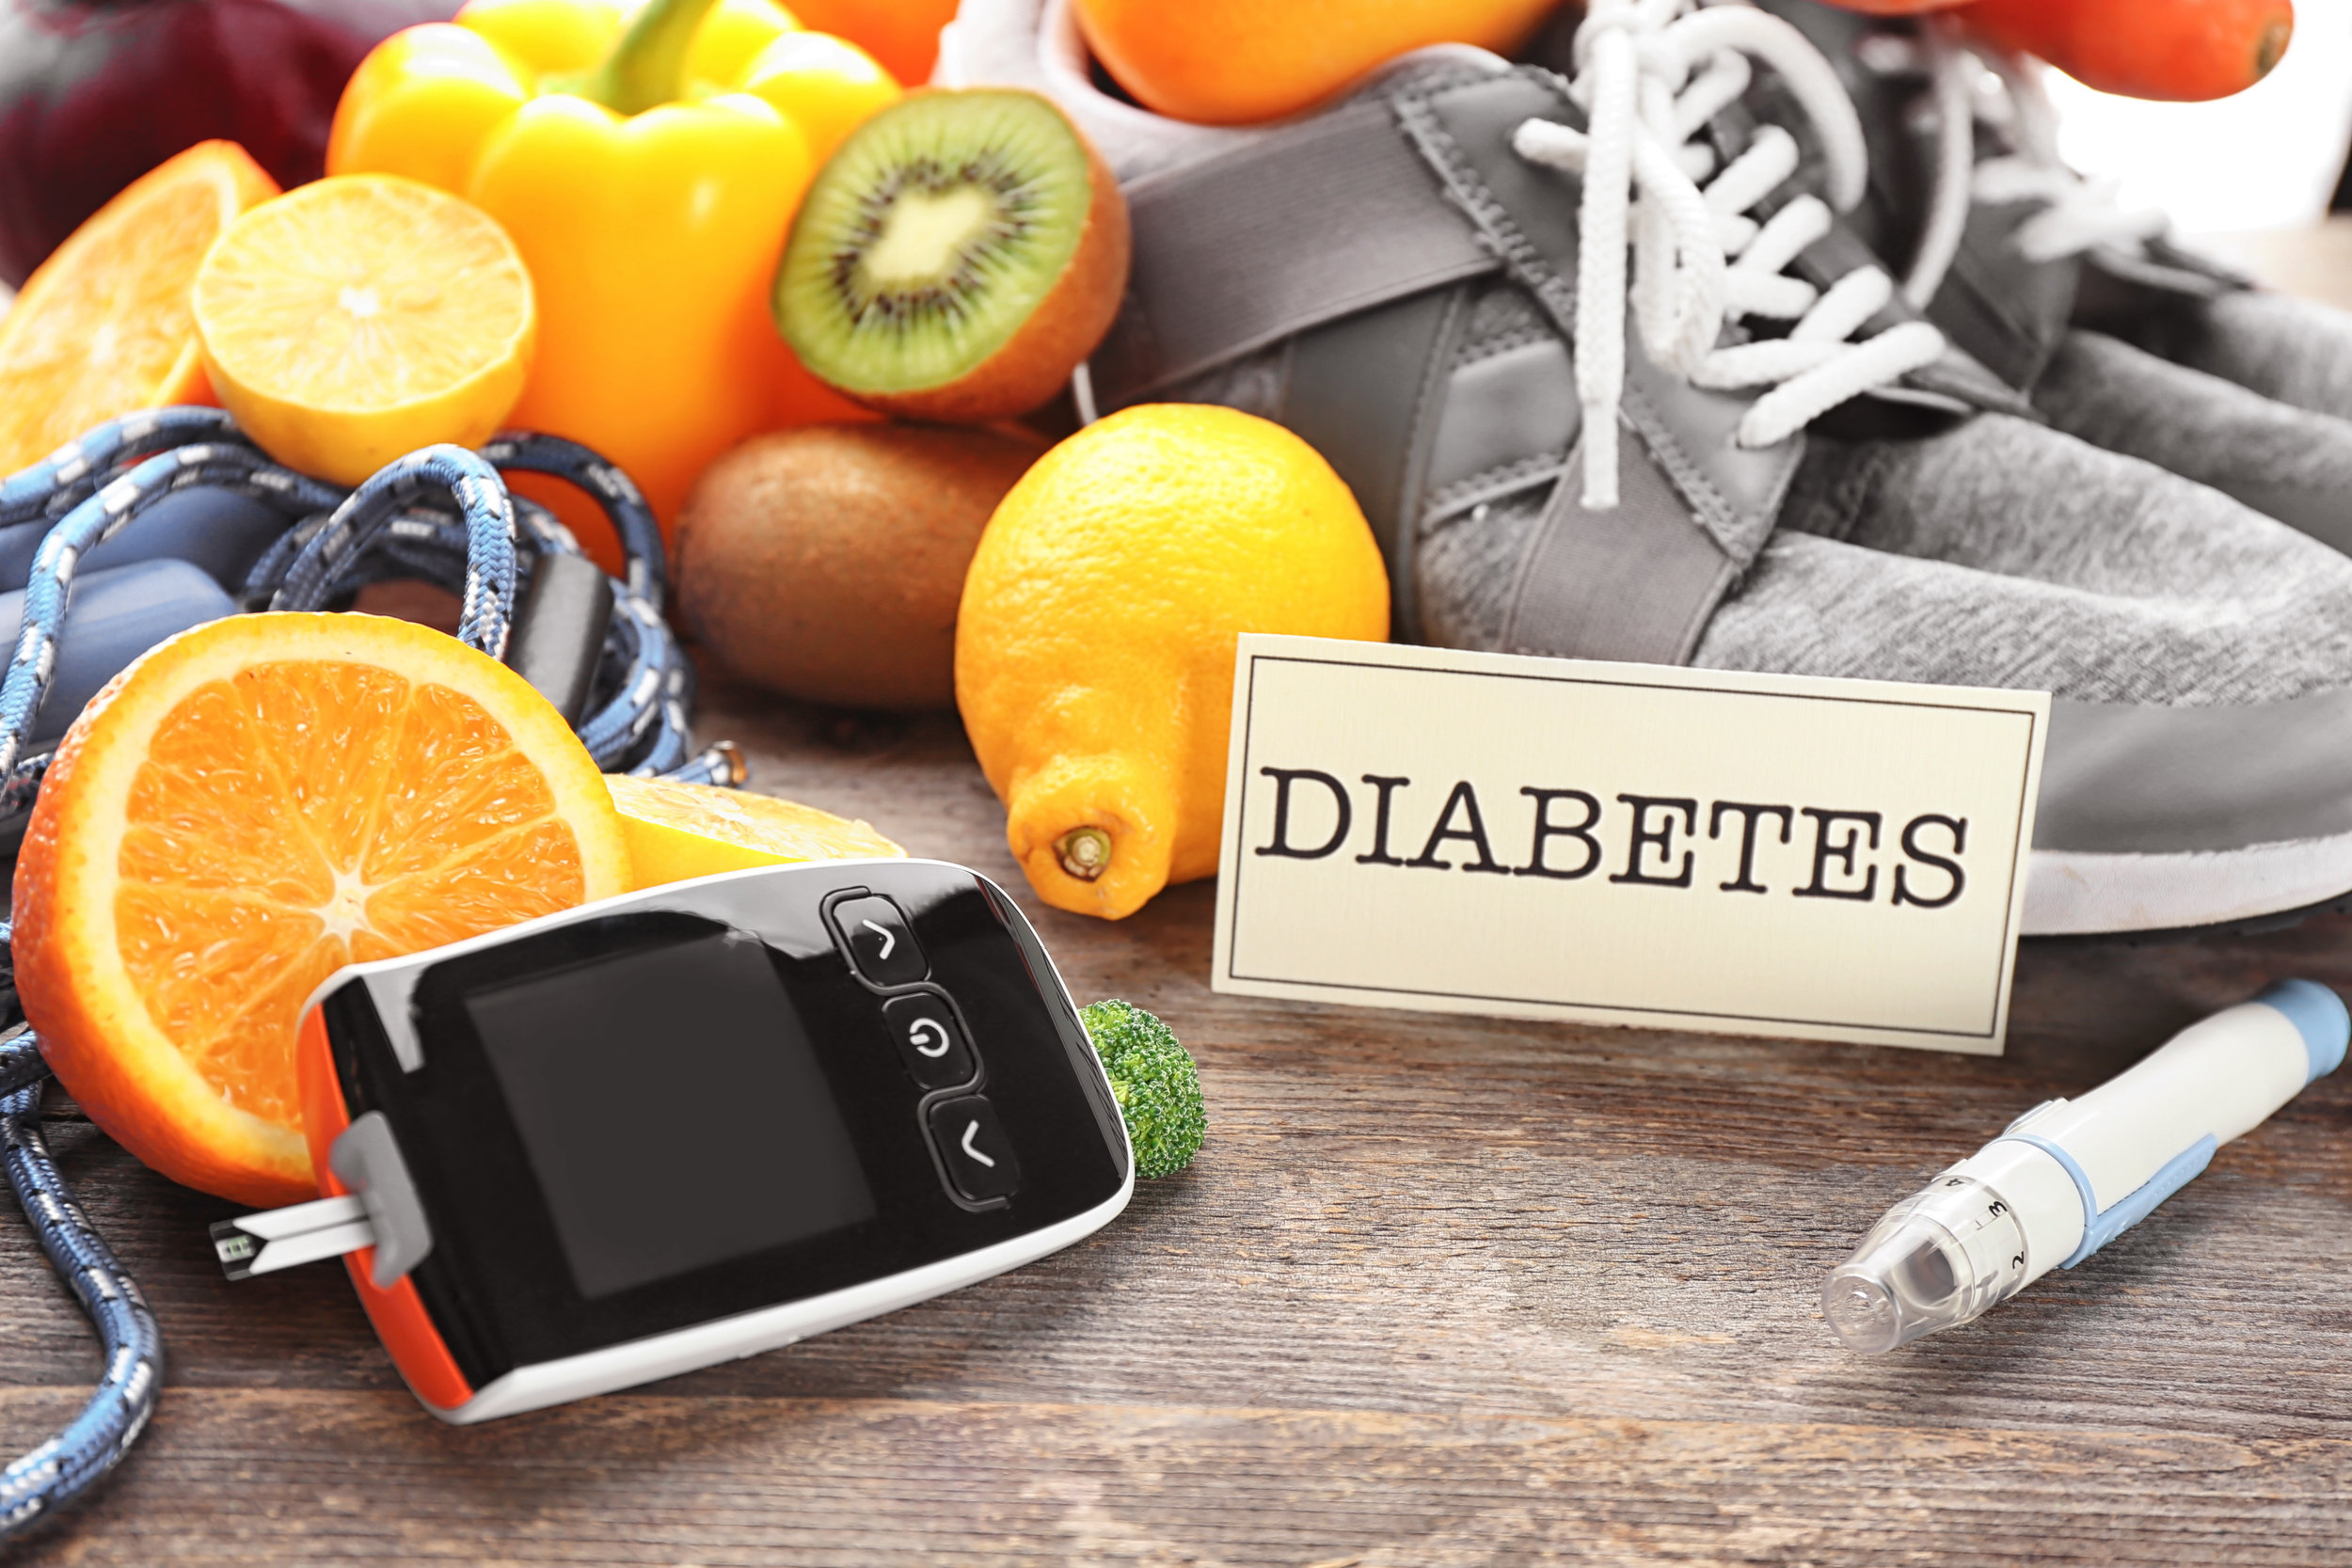 Beat Diabetes Program  - medically-guided clinical program for reversing diabetes. Learn more and register  here .